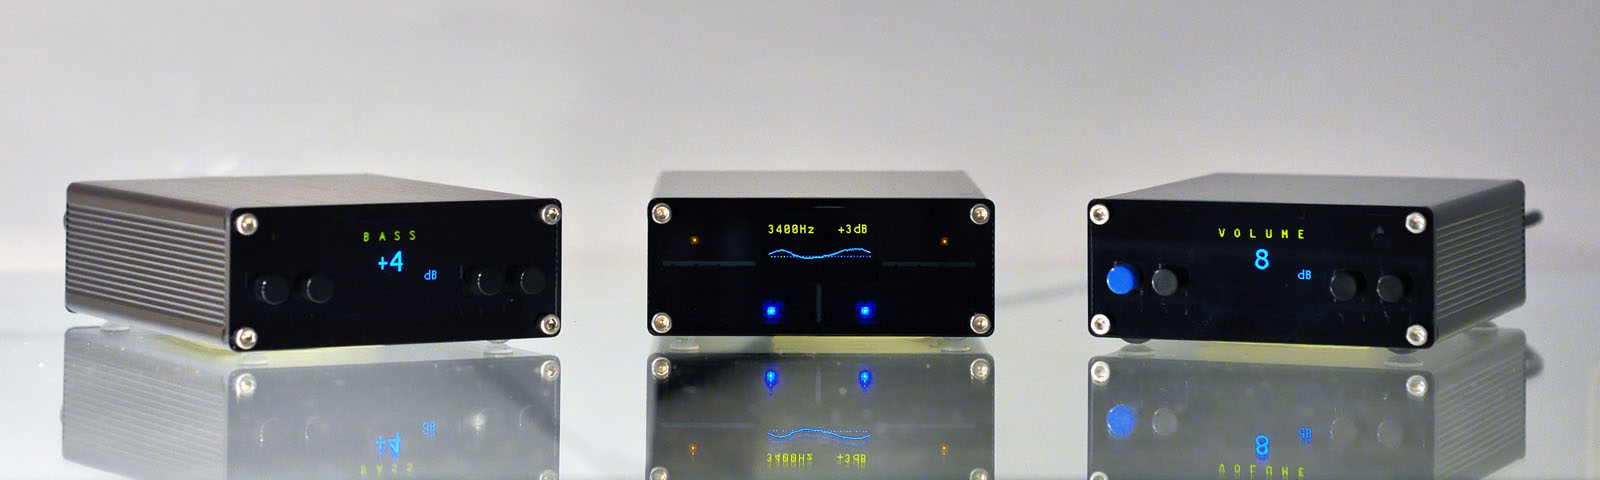 AMPER Pure Digital Audio Amplifier miniDSP